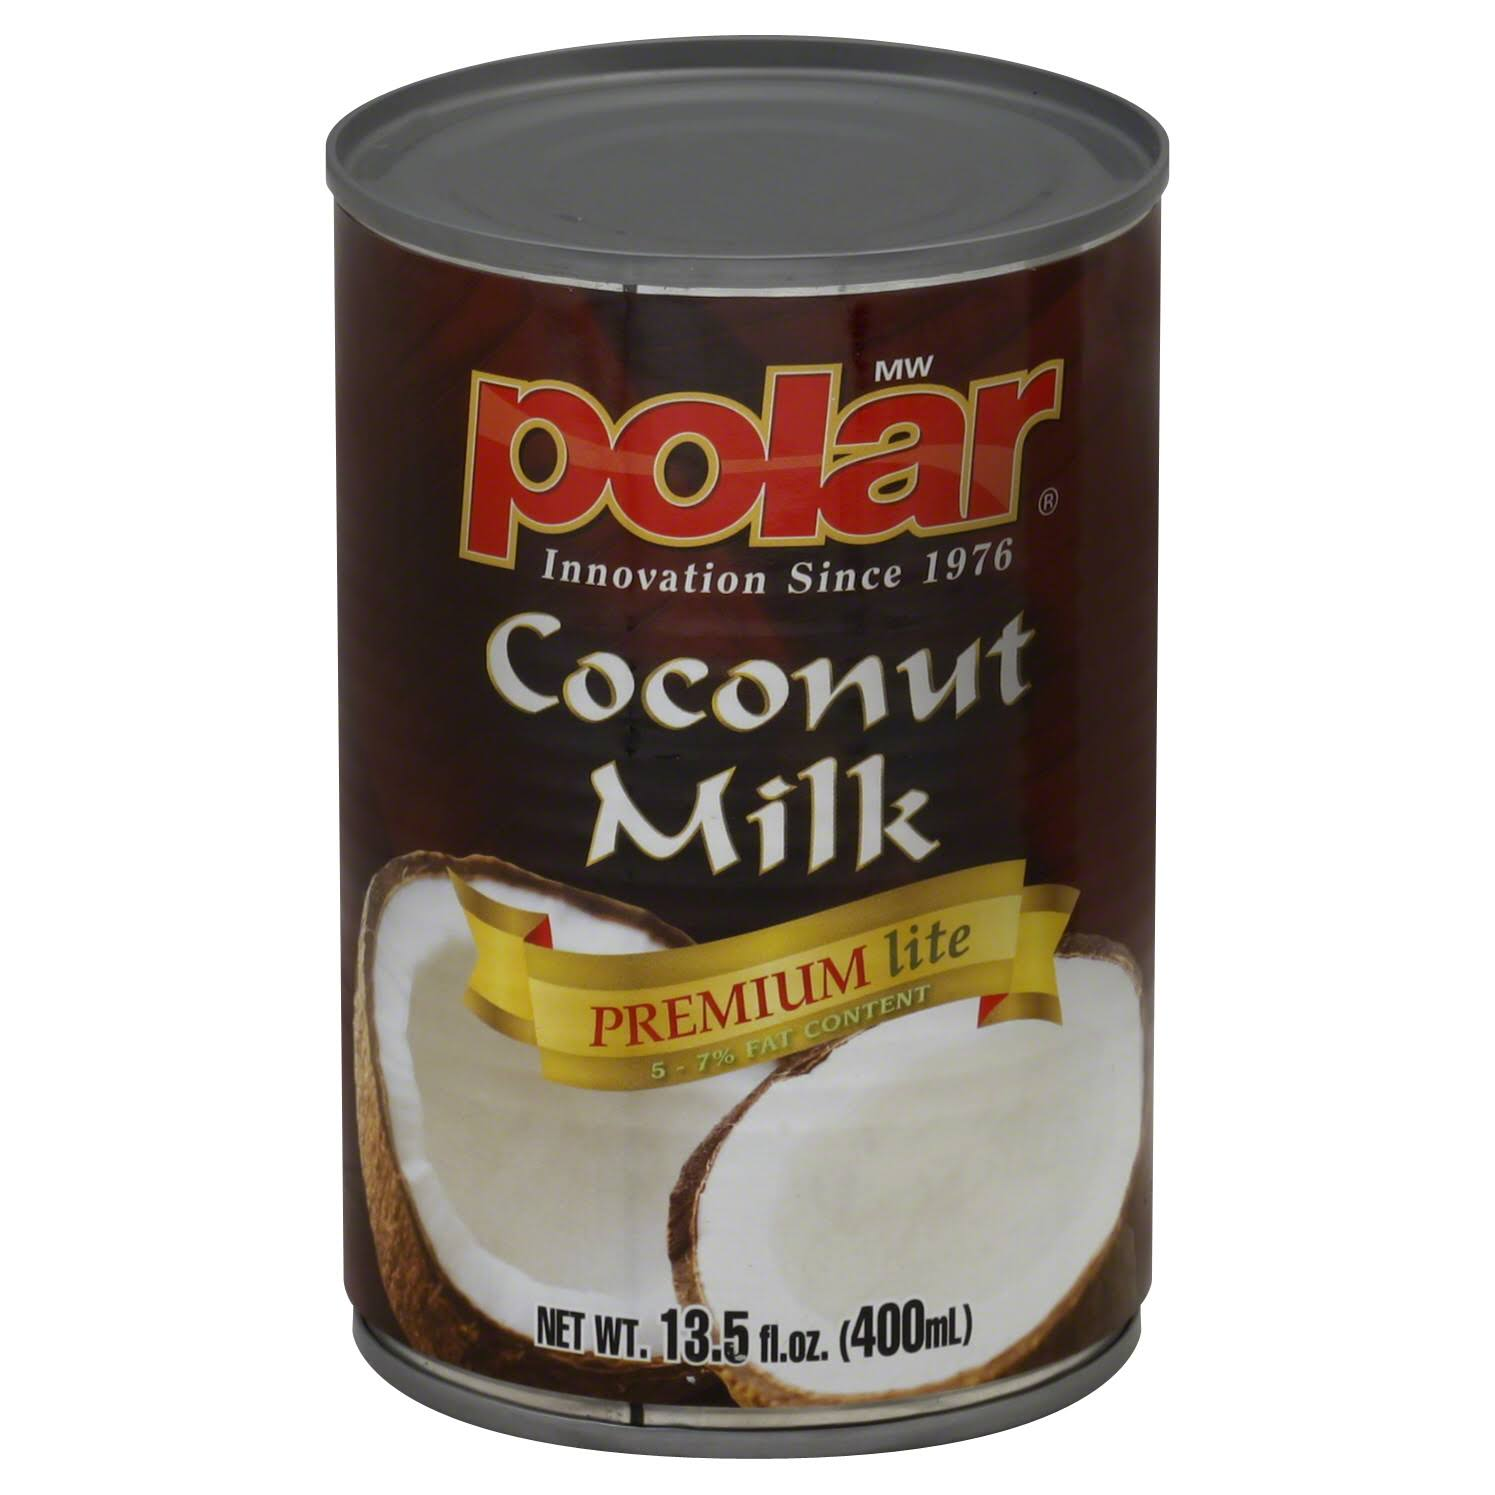 Polar Coconut Milk, Premium Lite - 13.5 fl oz